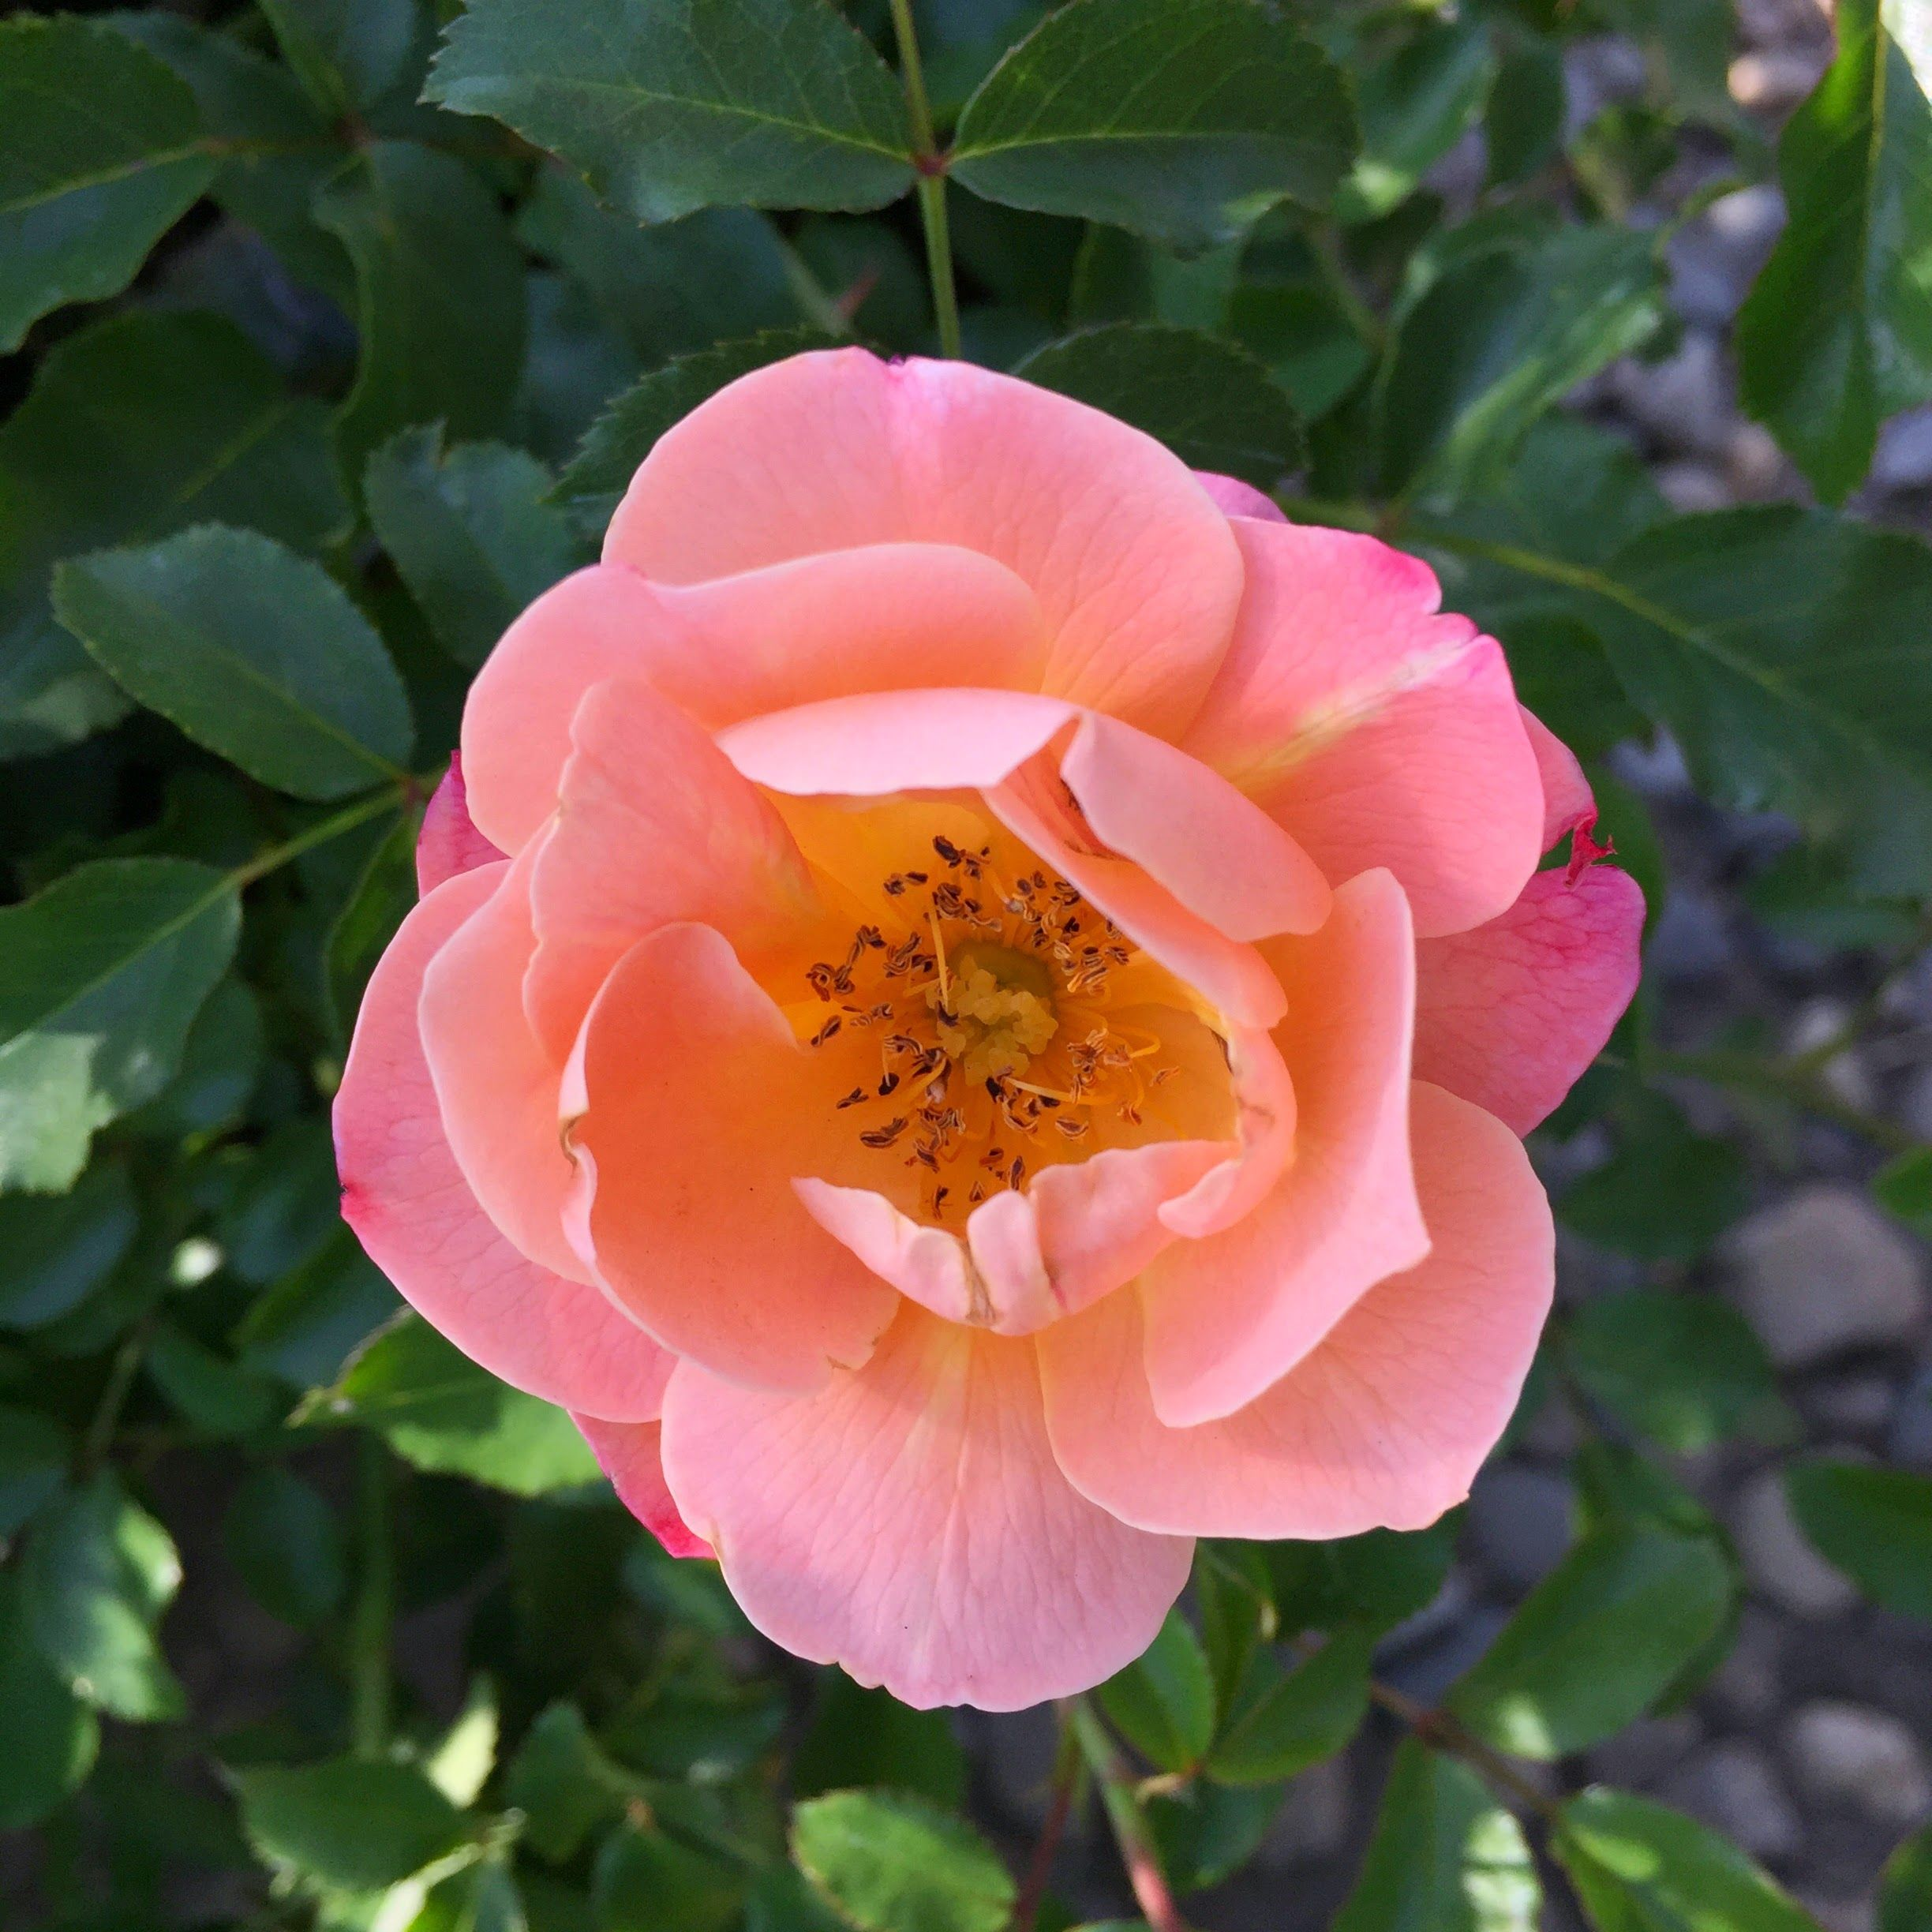 Flower Carpet Amber Groundcover Rose From Soft Red Buds Emerge